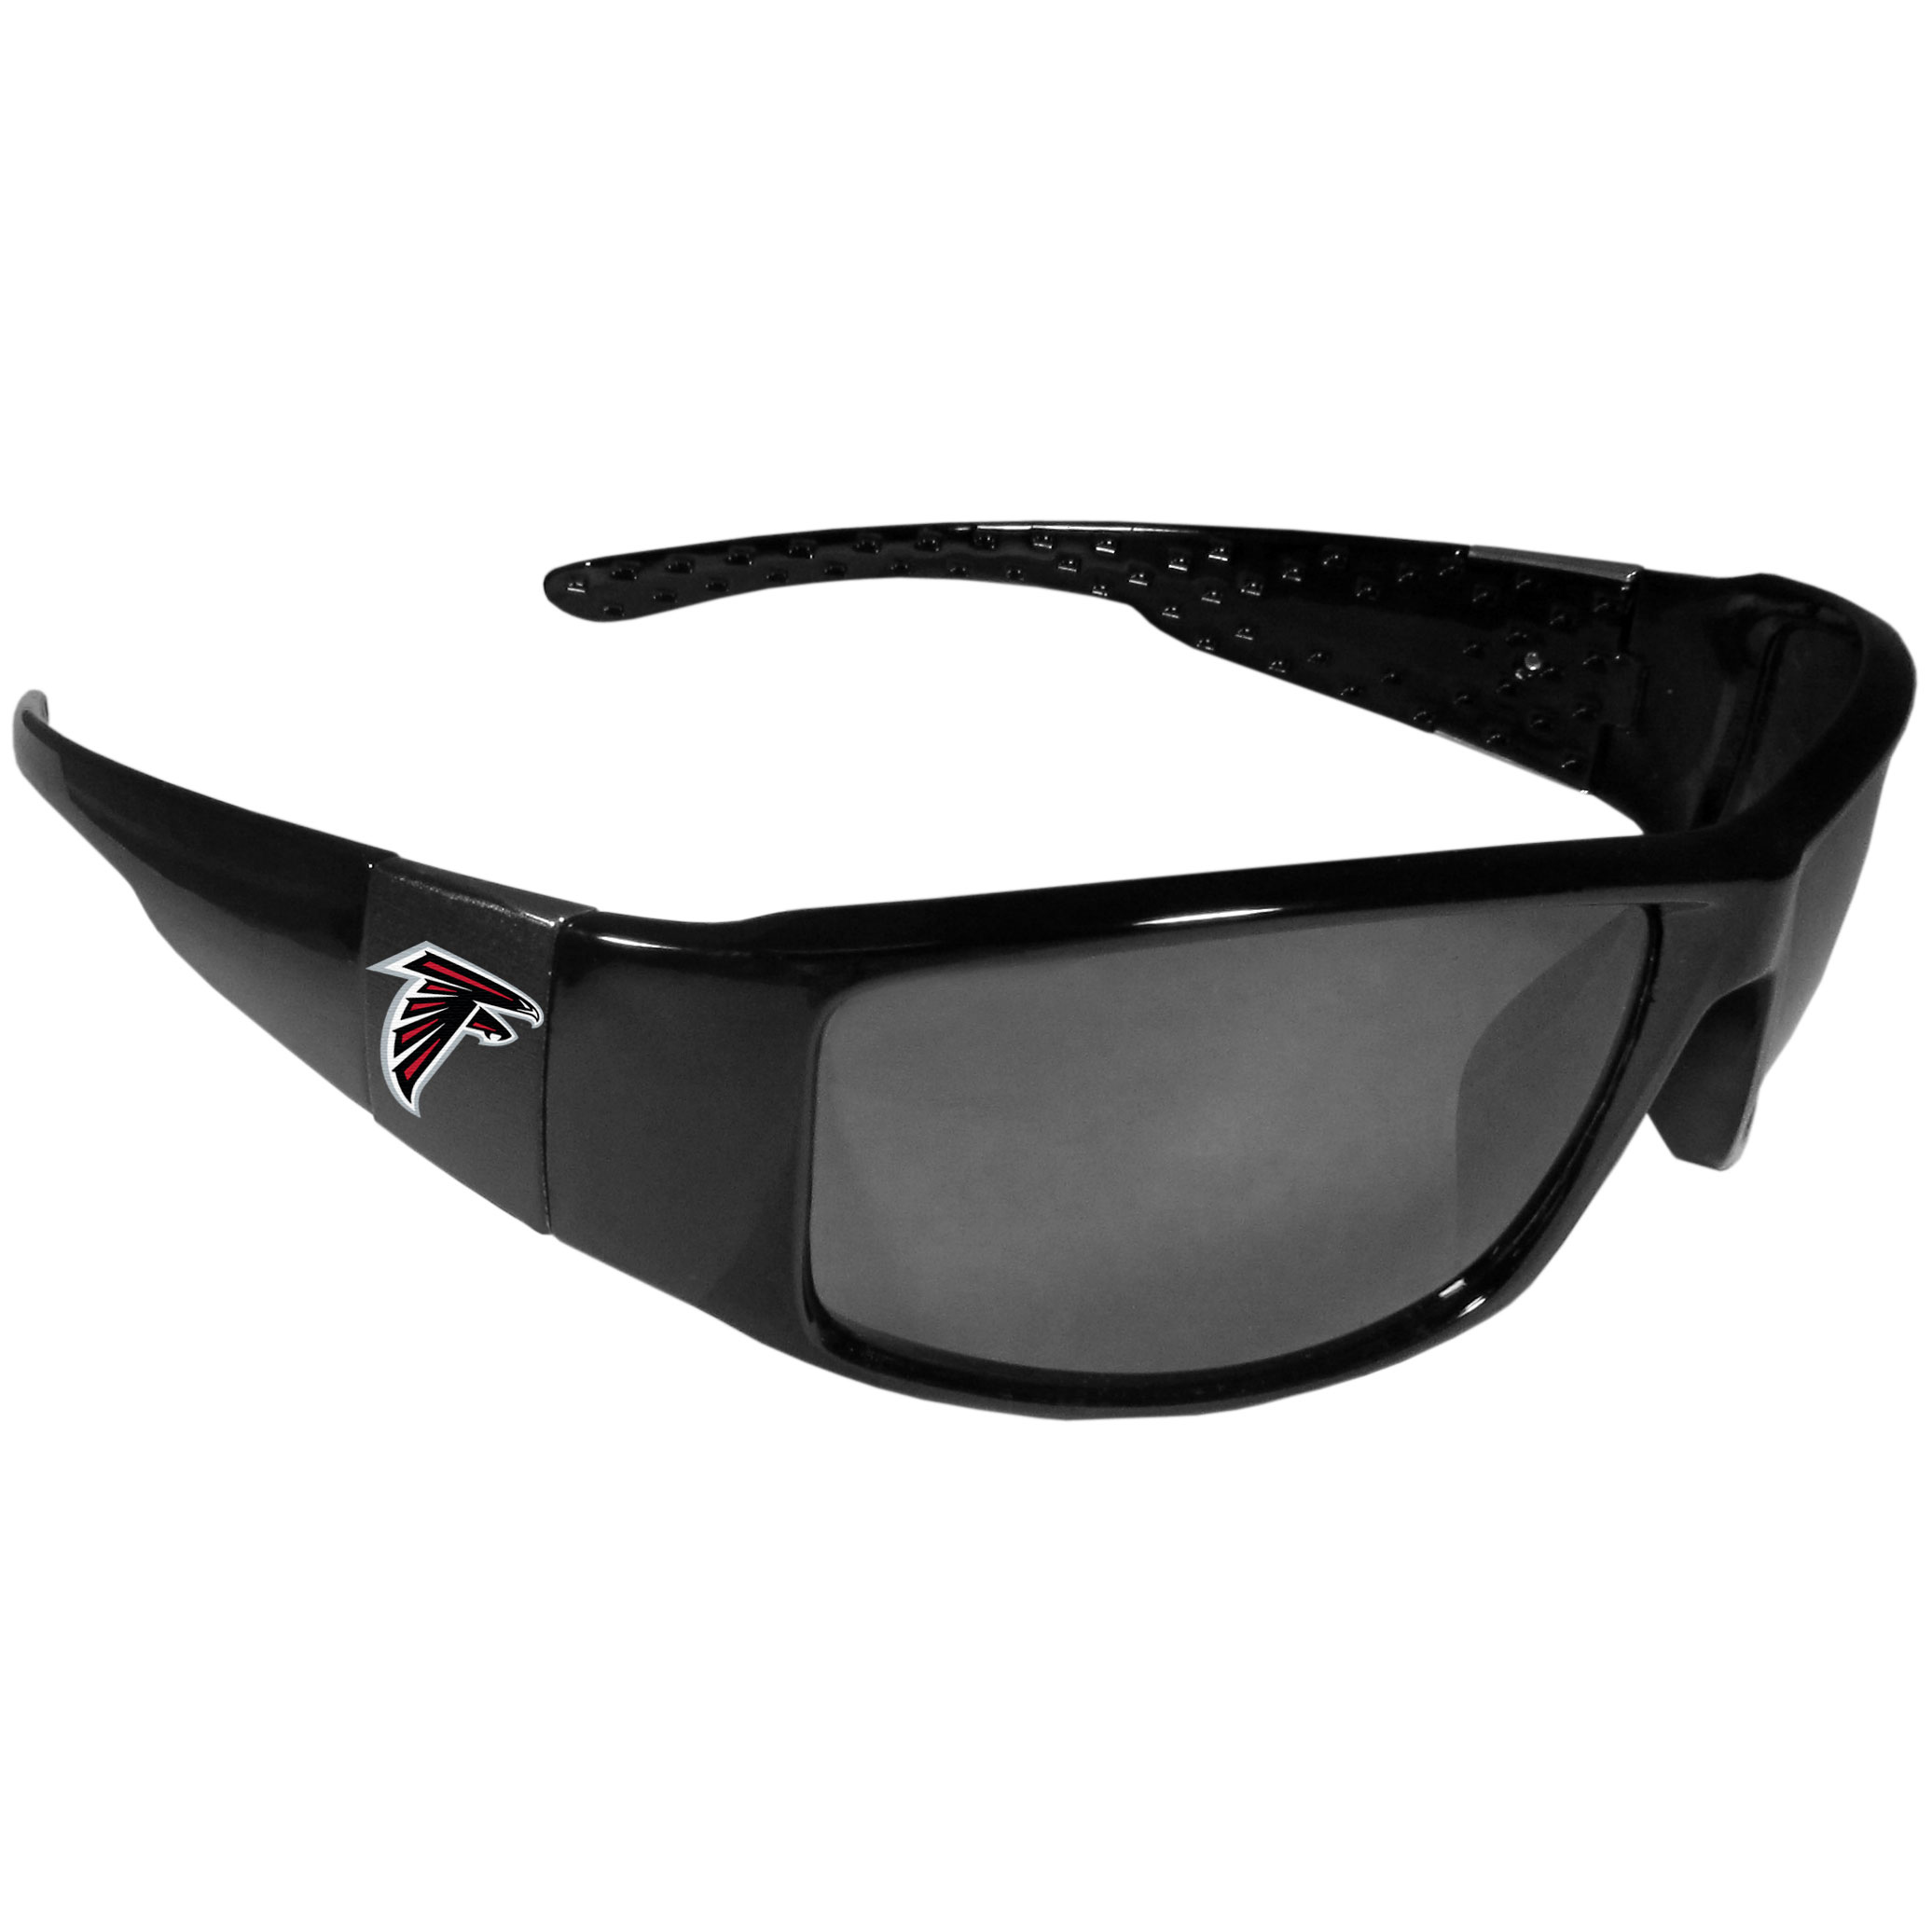 Atlanta Falcons Black Wrap Sunglasses - These designer inspired frames have a sleek look in all black with  Atlanta Falcons shields on each arm with a printed logo. The shades are perfect for any outdoor activity like; golfing, driving, hiking, fishing or cheering on the team at a tailgating event or at a home game day BBQ with a lens rating of 100% UVA/UVB for maximum UV protection. The high-quality frames are as durable as they are fashionable and with their classic look they are the perfect fan accessory that can be worn everyday for every occasion.